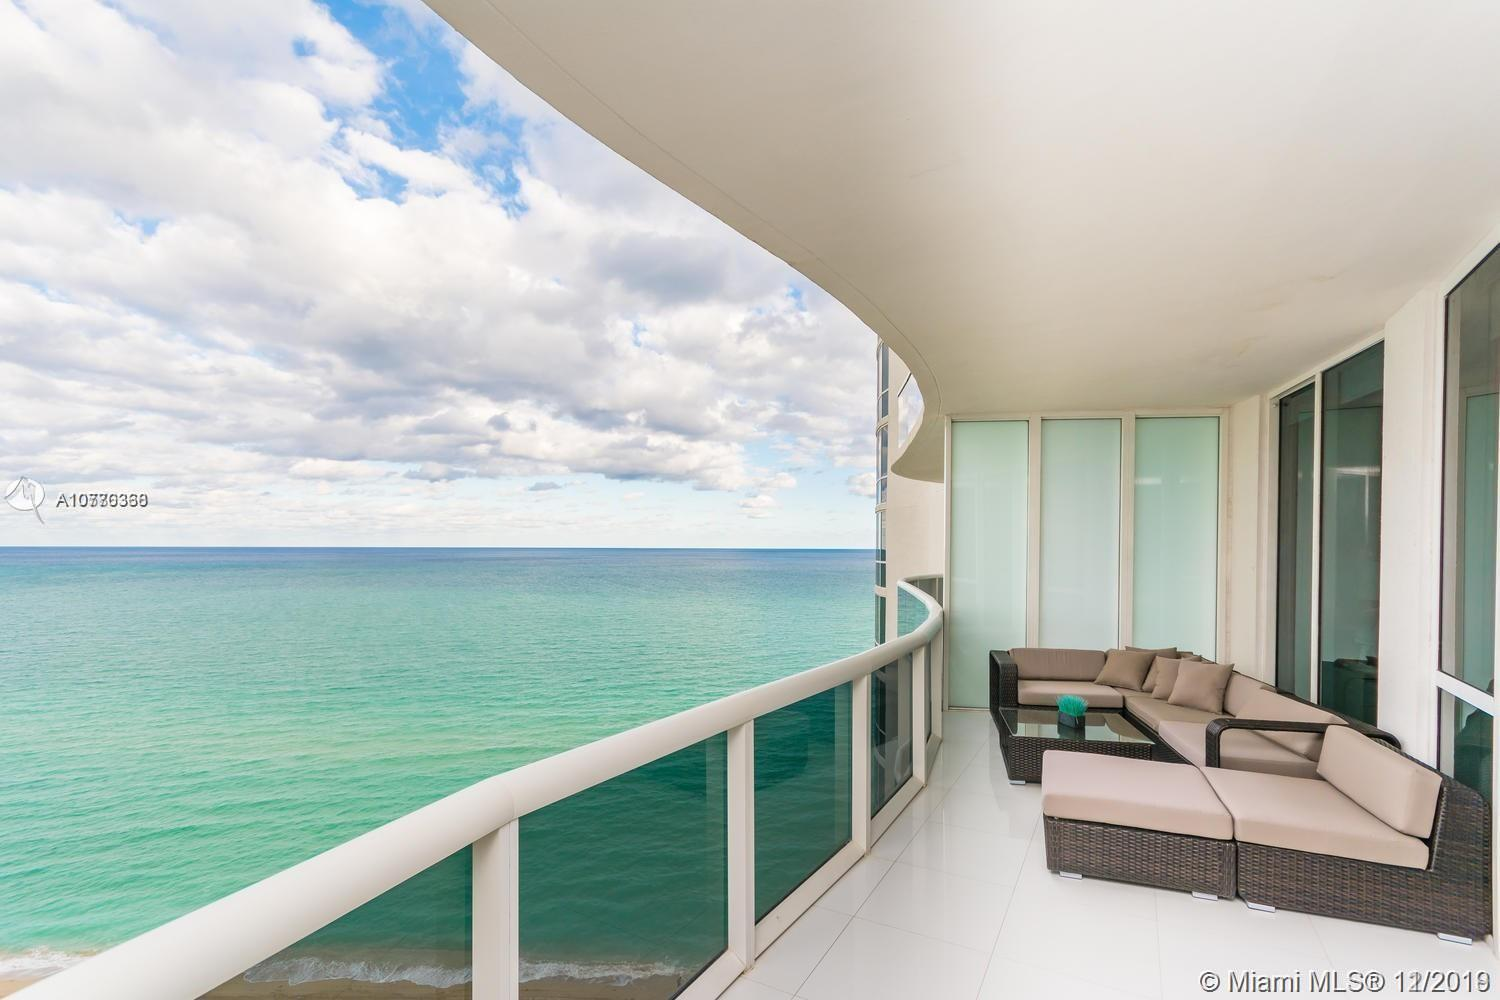 15901 Collins Ave, Sunny Isles Beach, Florida